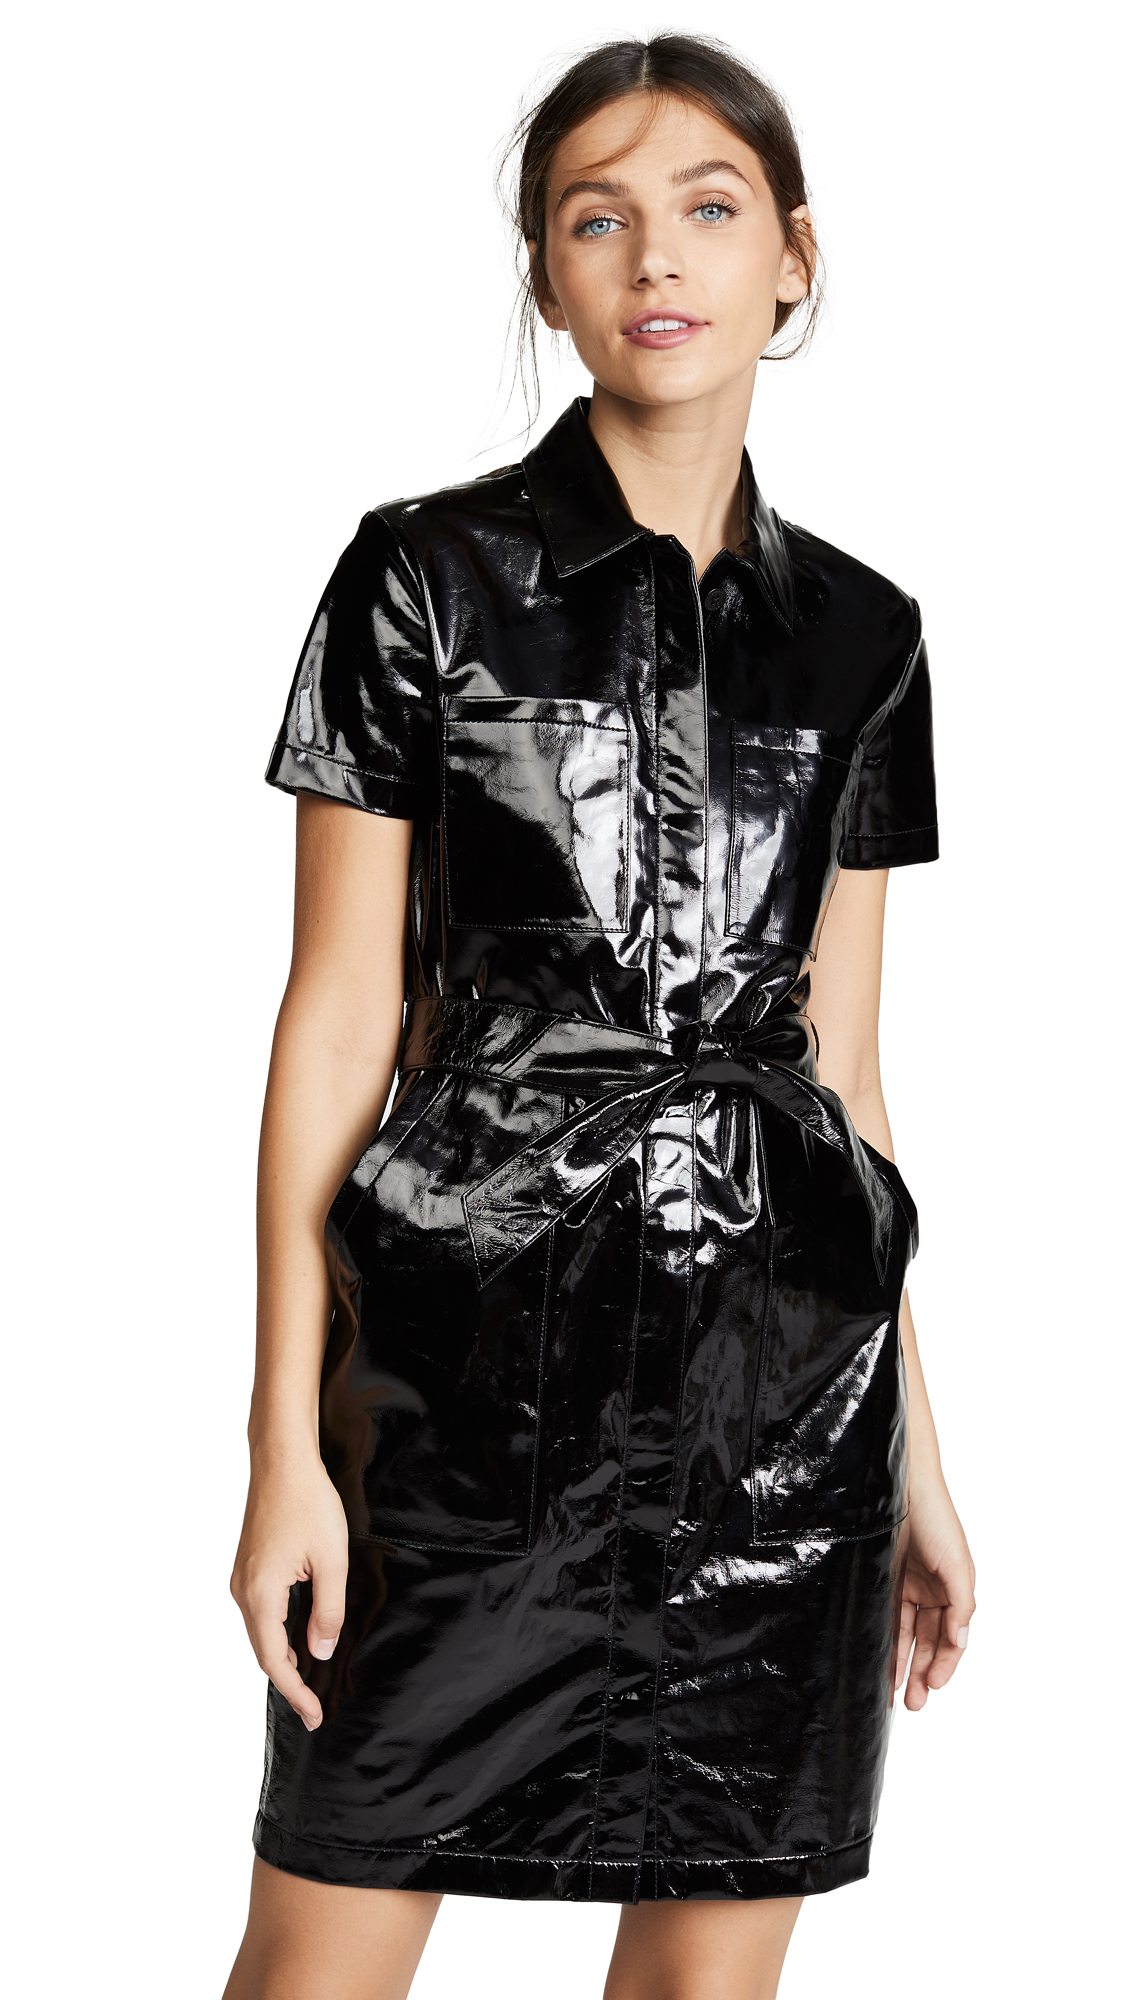 J Brand Lucille Leather Shirtdress - Patent Black